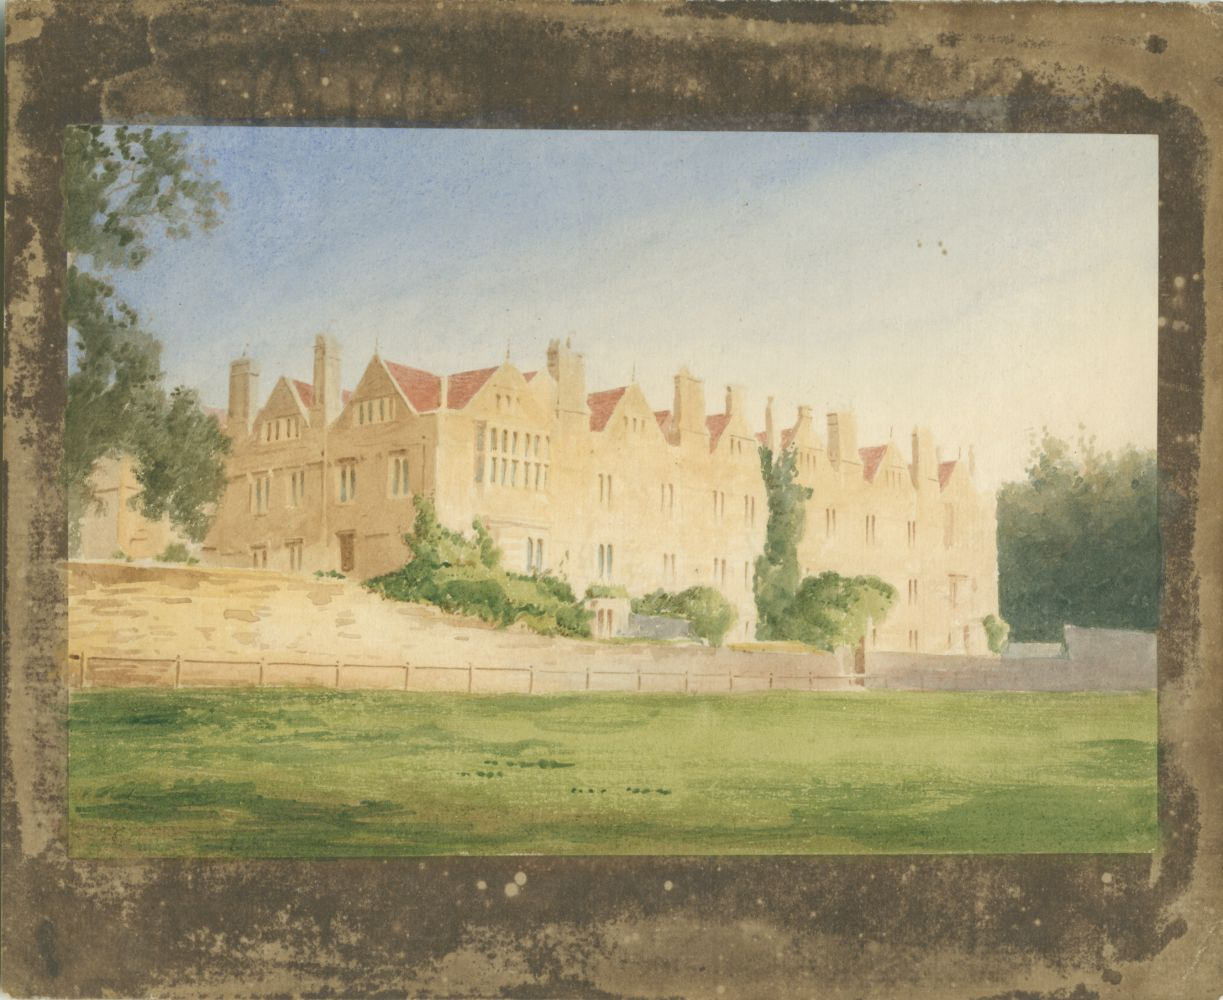 "William Henry Fox TALBOT (English, 1800-1877) Merton College from the fields, Oxford, circa 1843 Hand colored (possibly by André Mansion) salt print, from a calotype negative 13.6 x 20.2 cm on 18.7 x 22.7 cm paper Inscribed ""M' and ""X"" and [illegible] in pencil on verso"